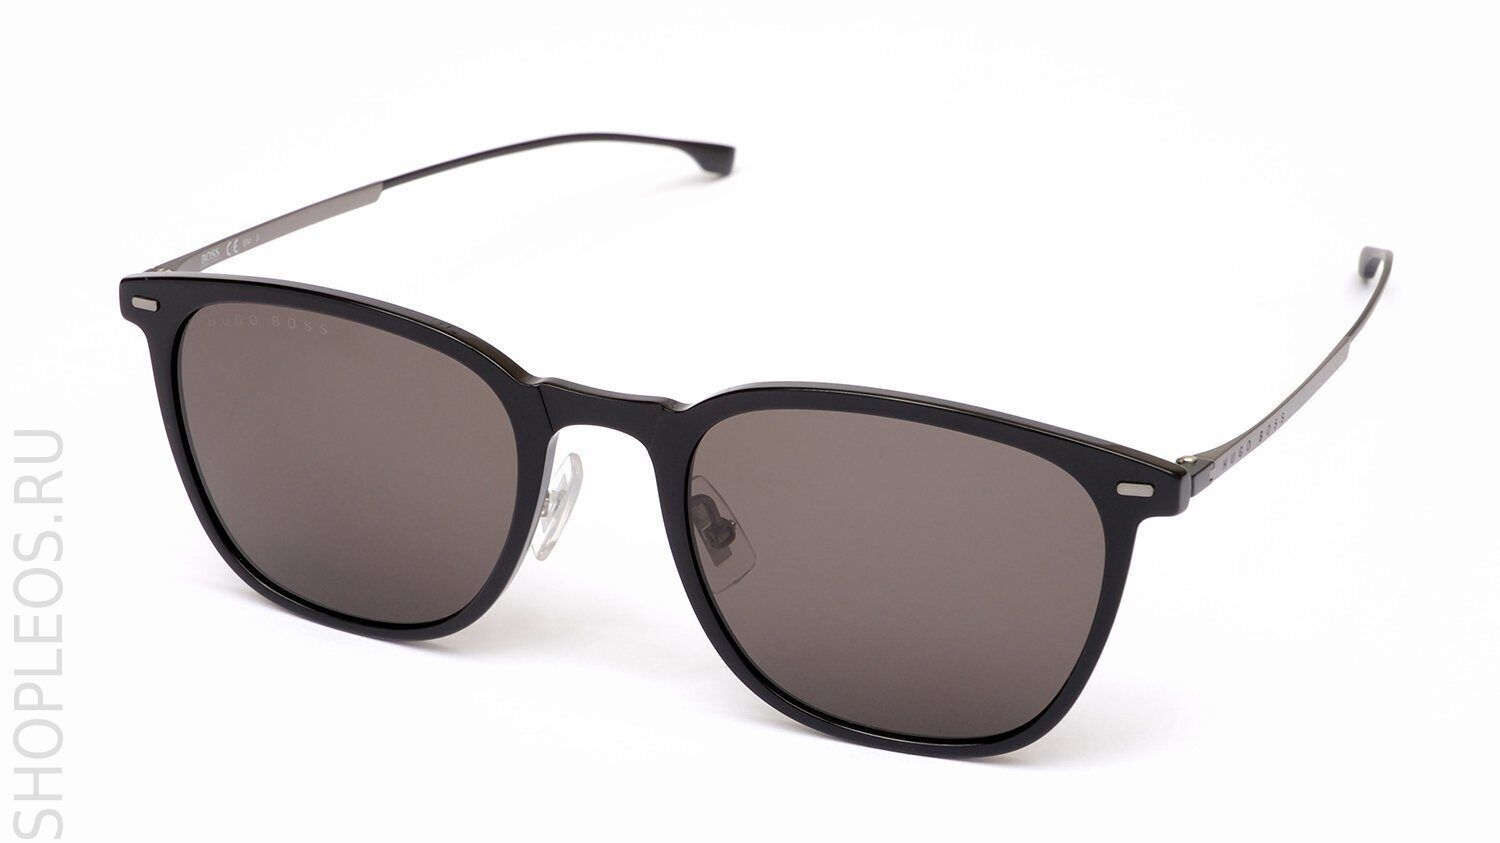 HUGO BOSS MAN BOSS 0974/S 807